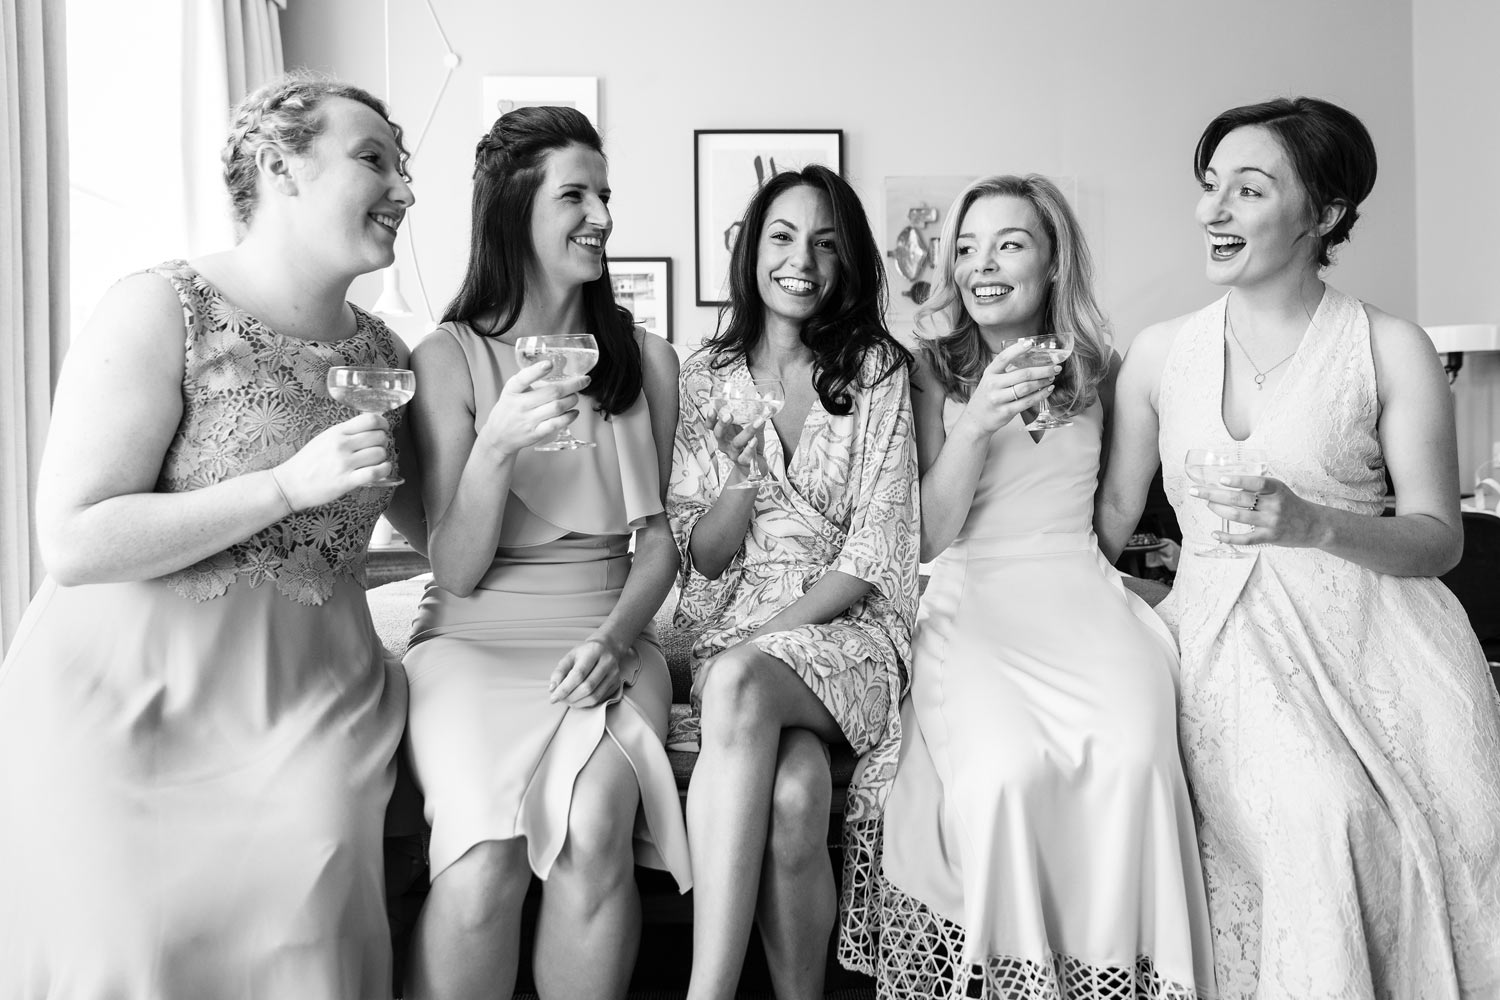 A bride and her bridesmaids pose at The Laslett Hotel in London